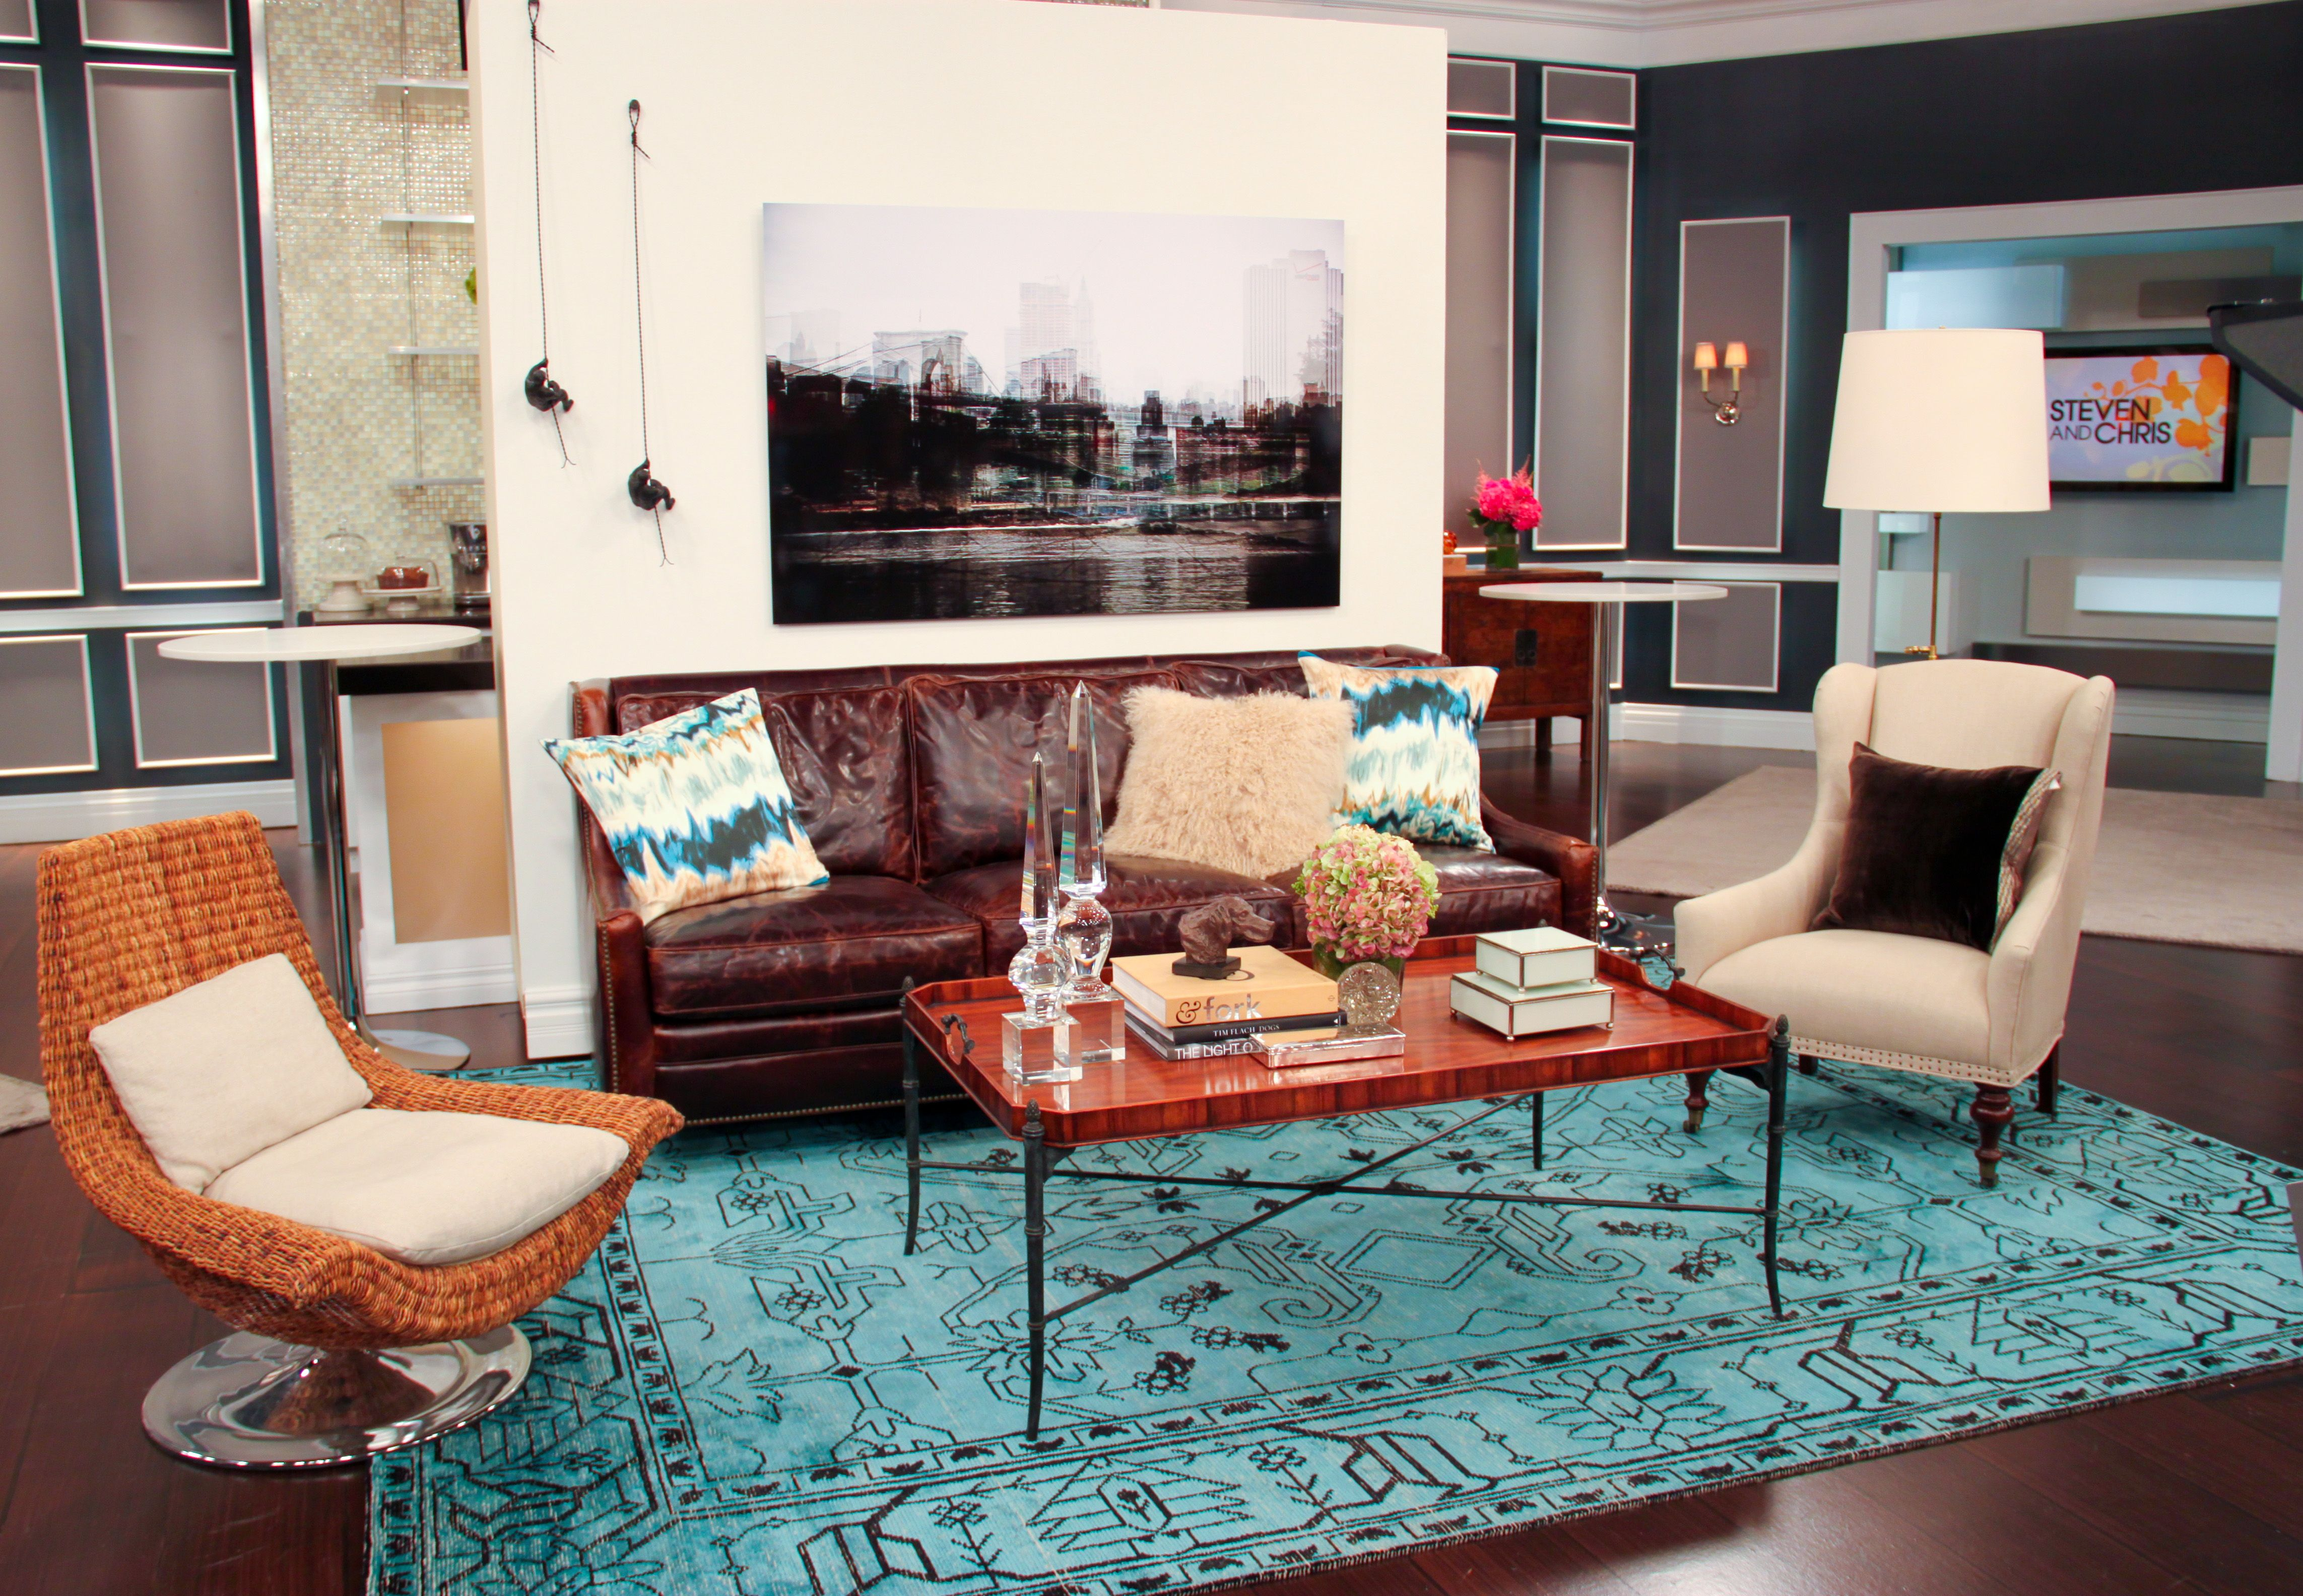 Decorations interior fantastic home designing with bohemian decor added brown faux sofa and chairs on teal rugs as inspiring living room also rh pinterest